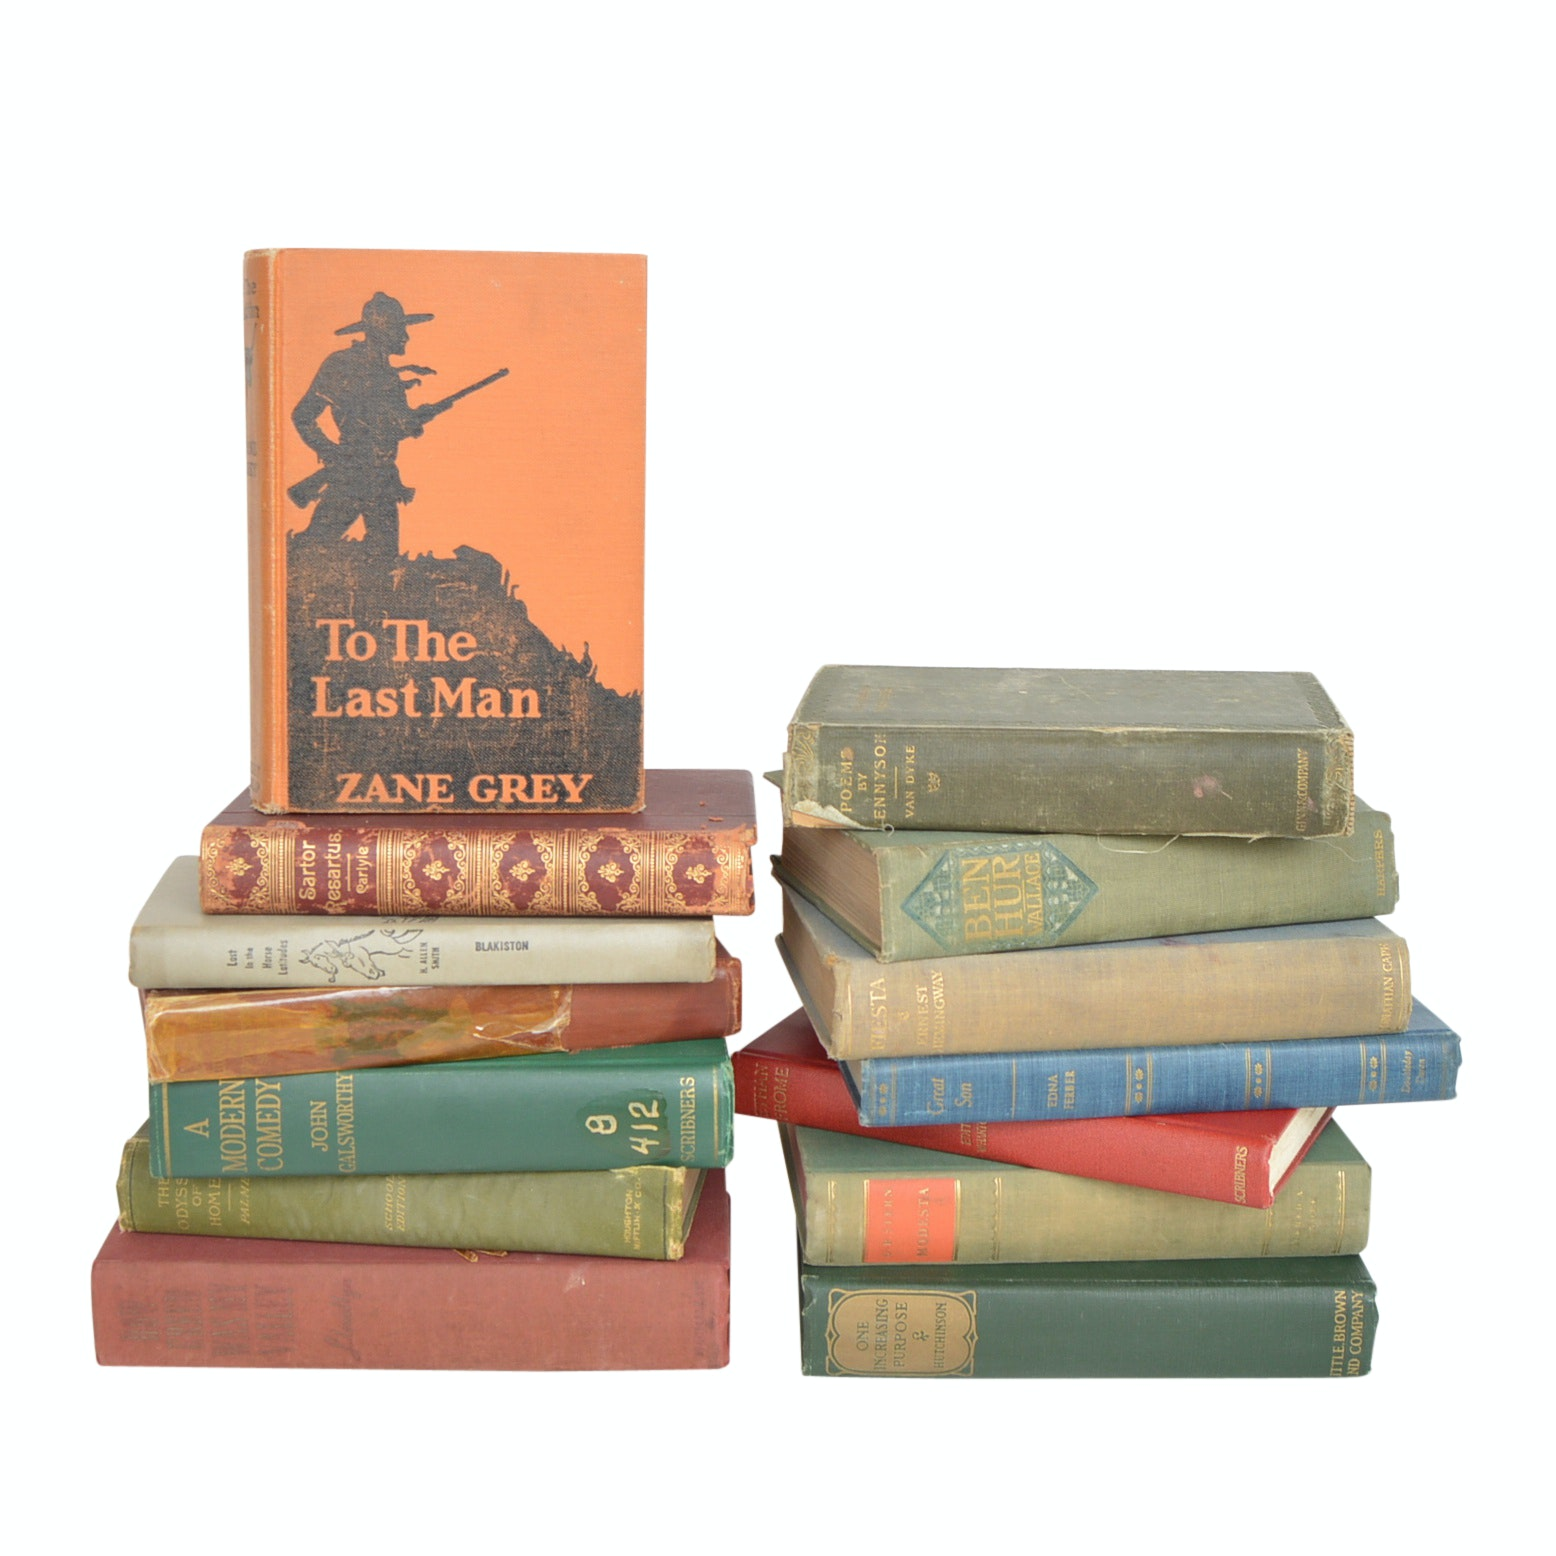 Vintage and Antique Classic Fiction Books with First Editions